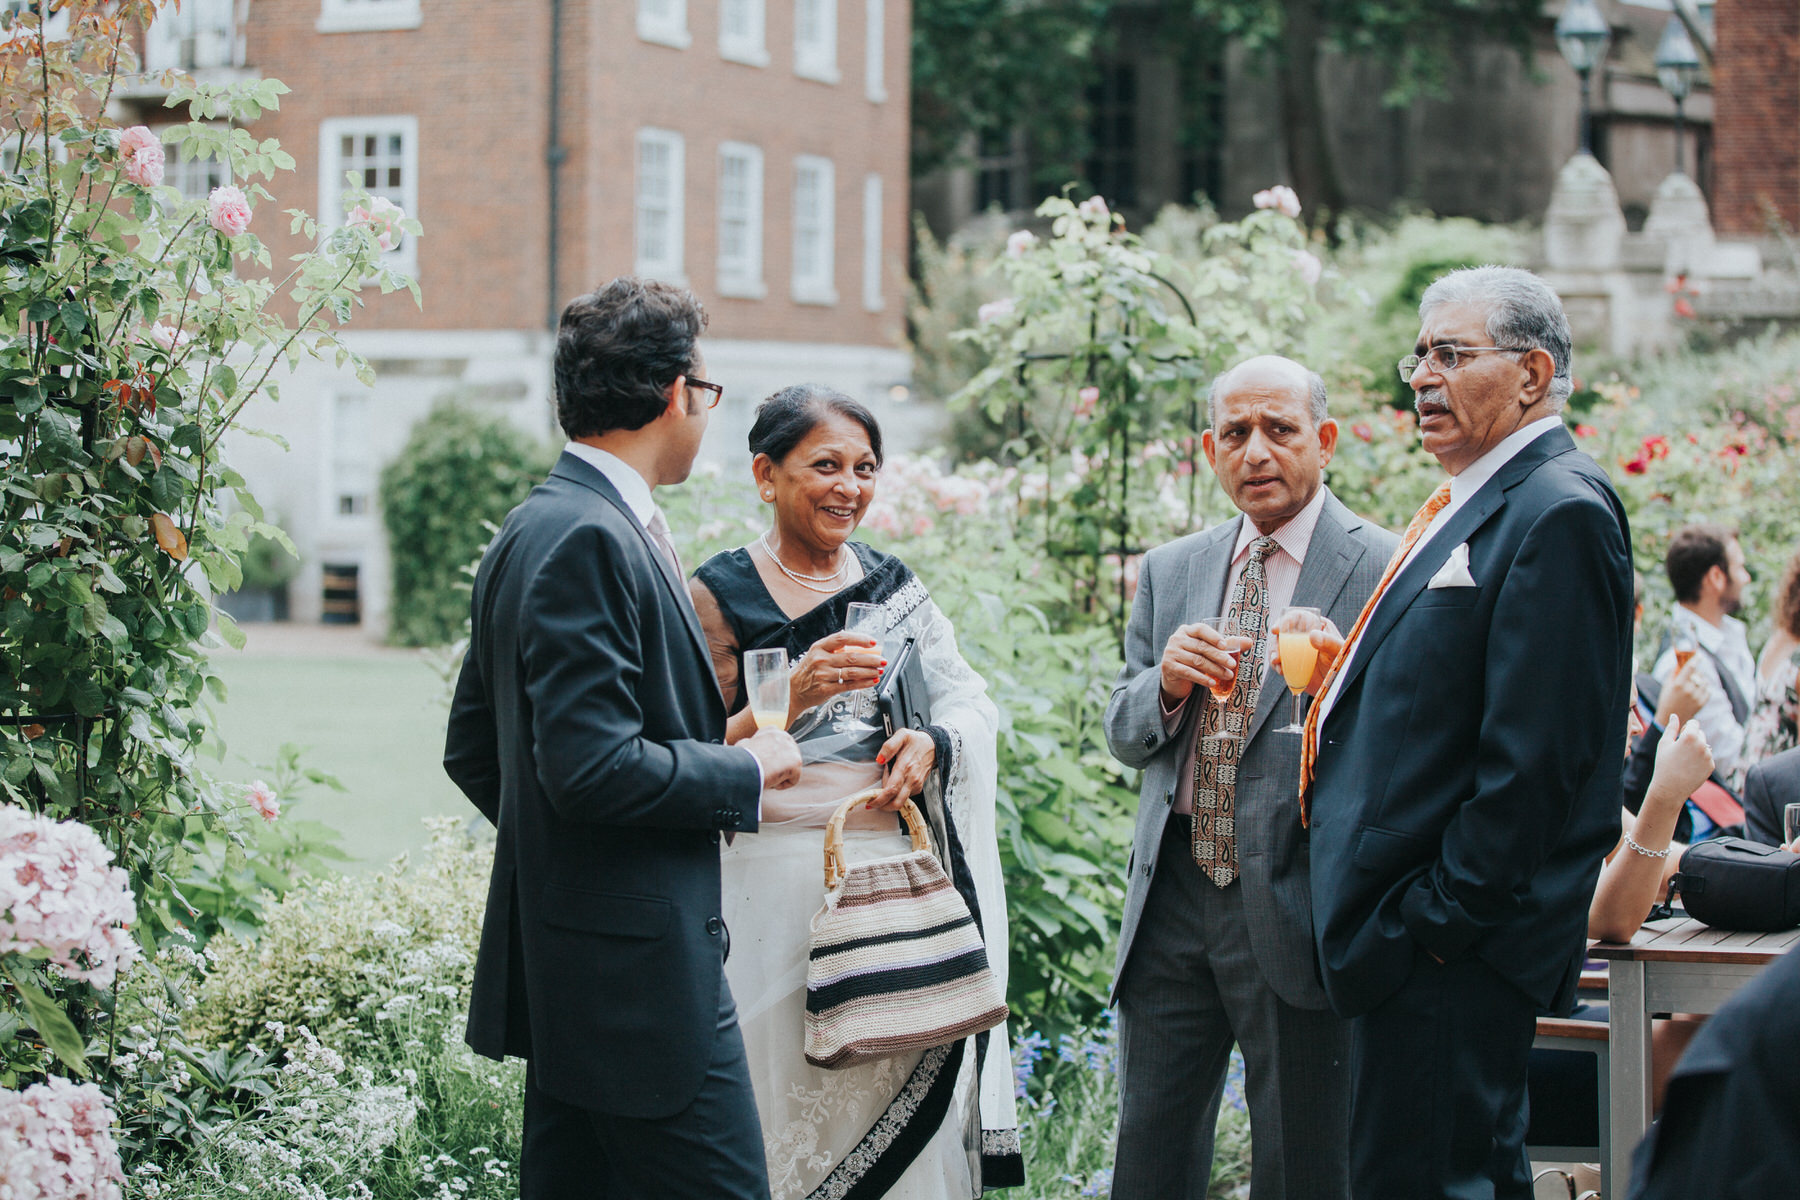 106-Wedding-Middle-temple-drinks-reception-guests-champagne-cocktails.jpg